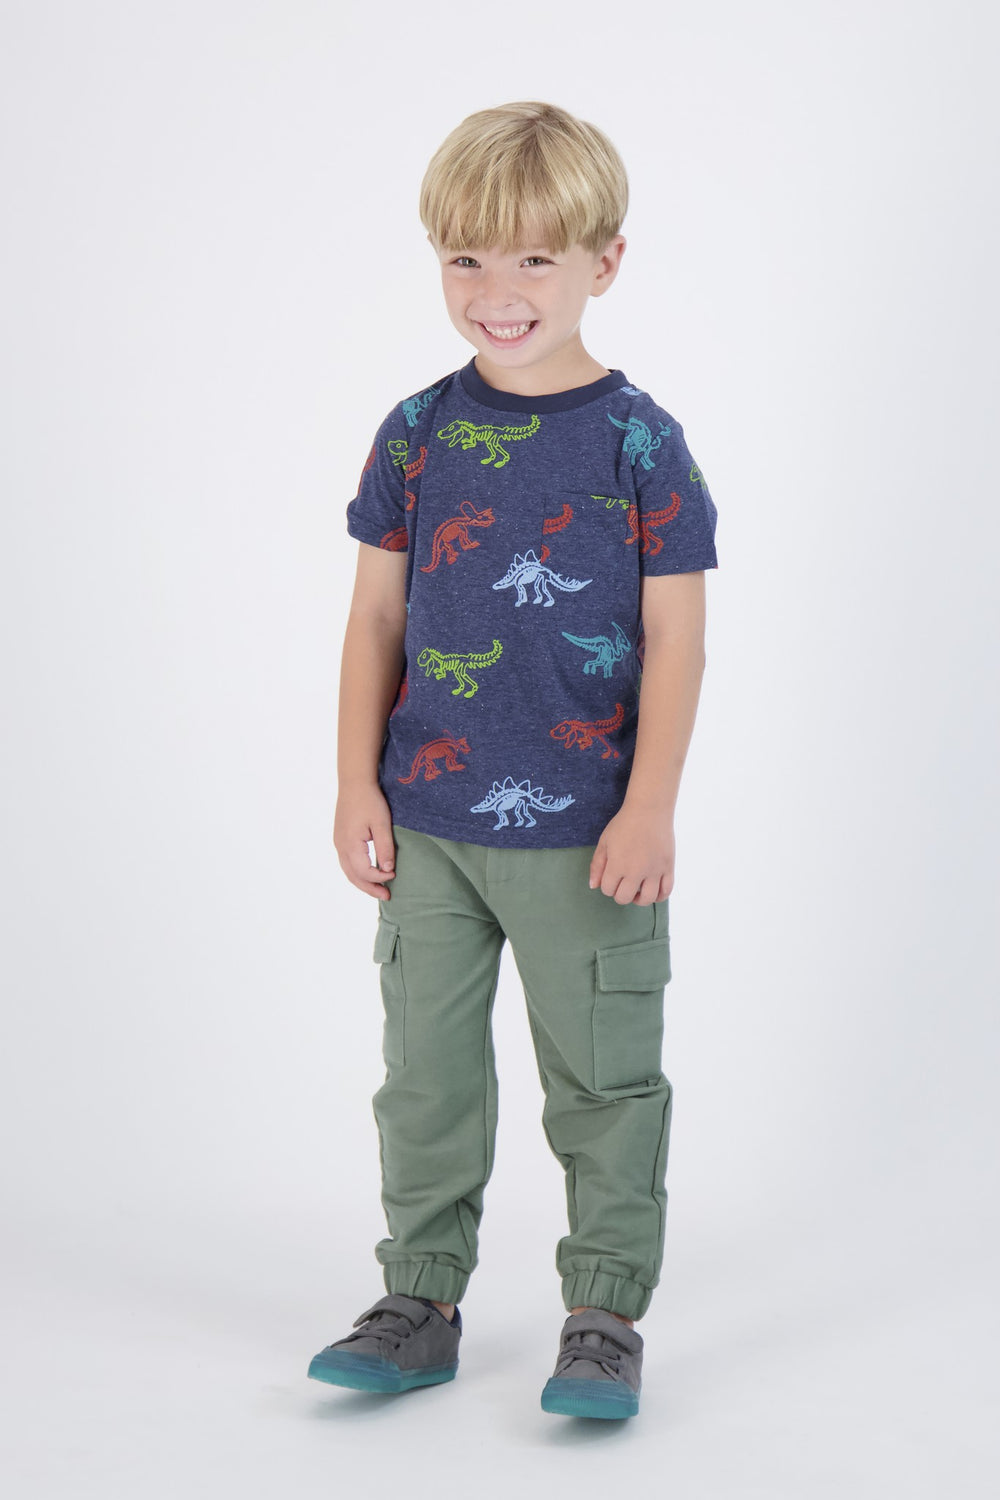 Boys Navy Short Sleeve Tee Shirt With Dinosaur Prints - Andy & Evan